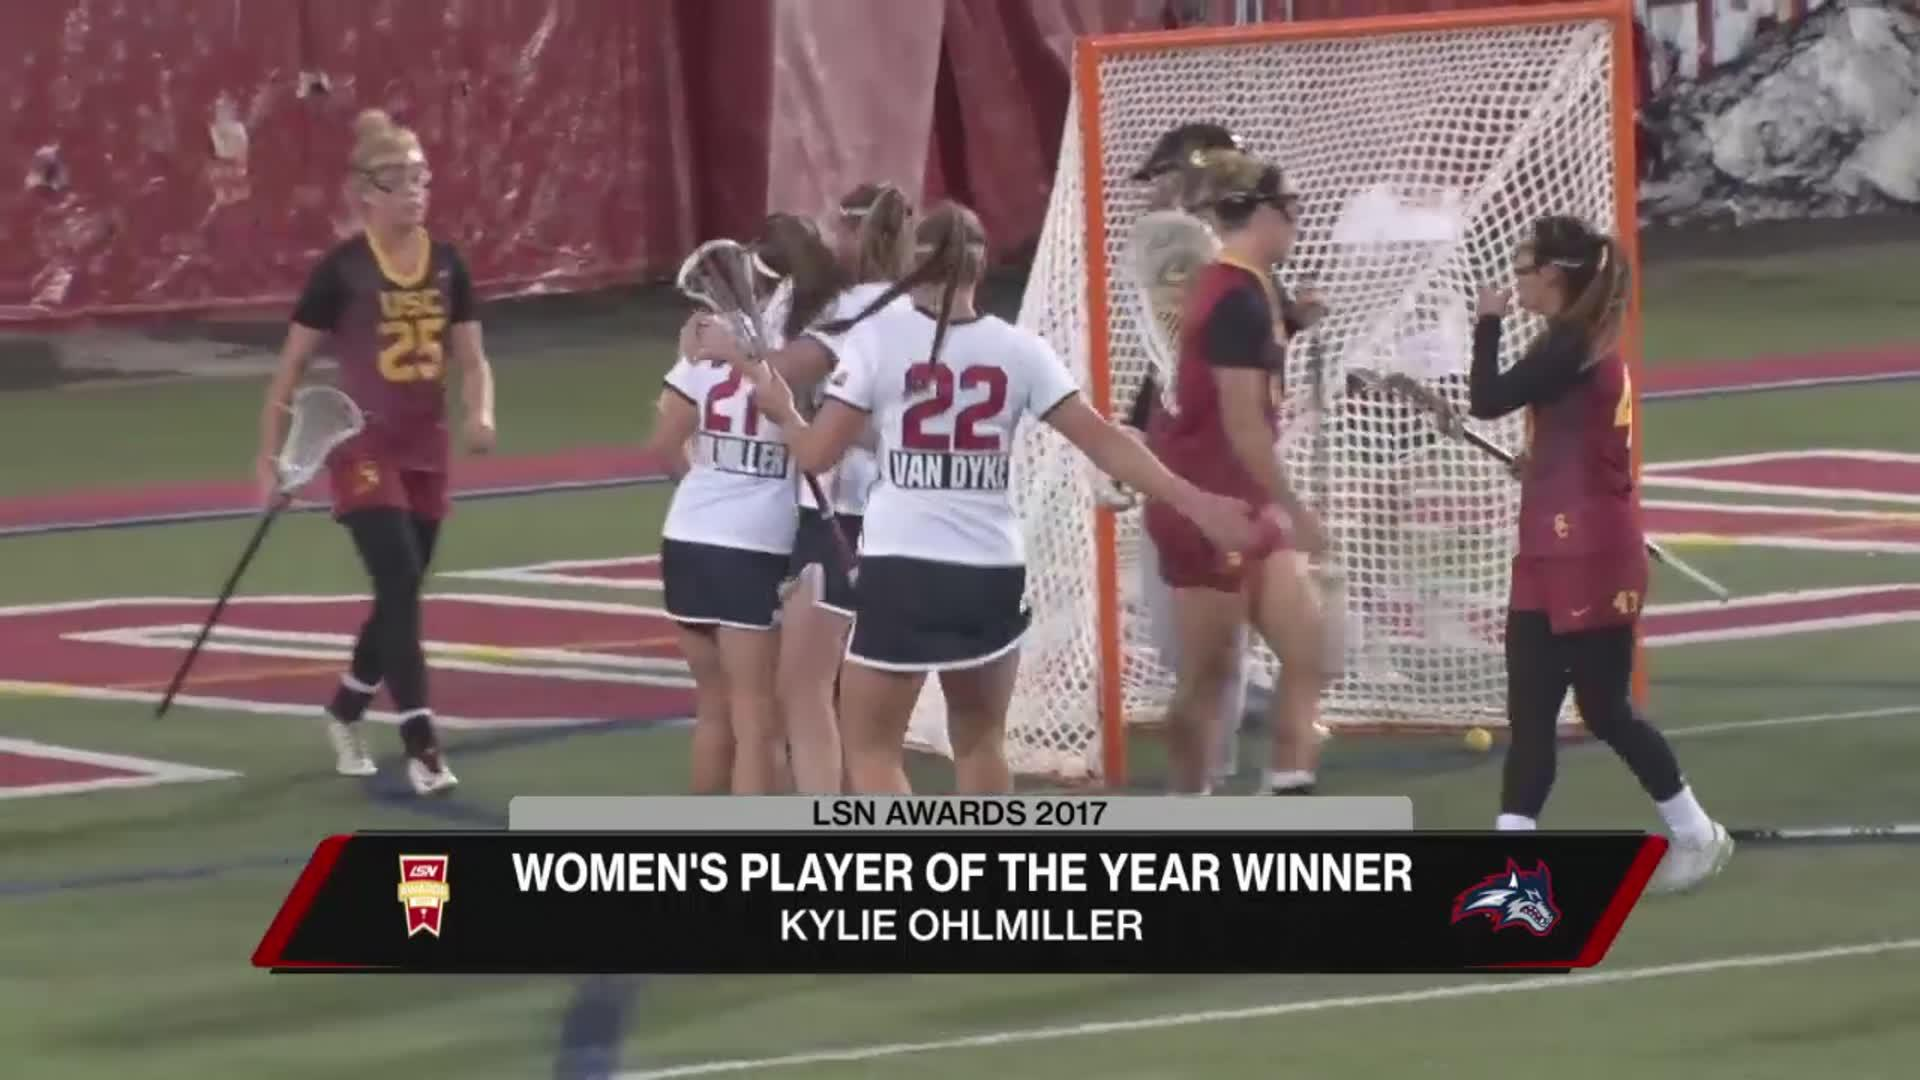 2017 LSN Awards: NCAA Women's Player of the Year